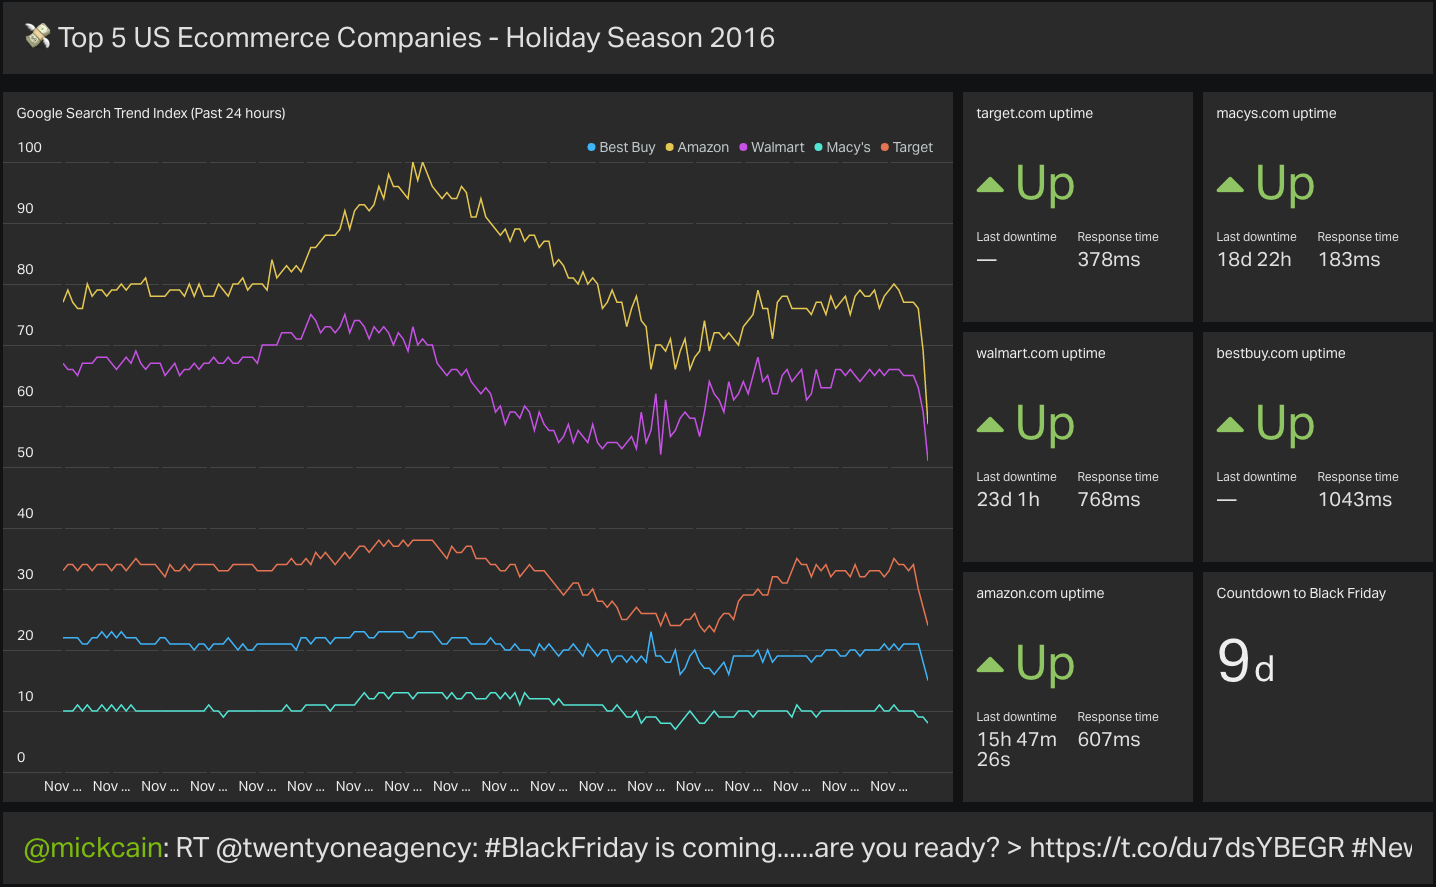 Track The Top Five Us Ecommerce Brands On Black Friday With Our Live Dashboard Geckoboard Blog